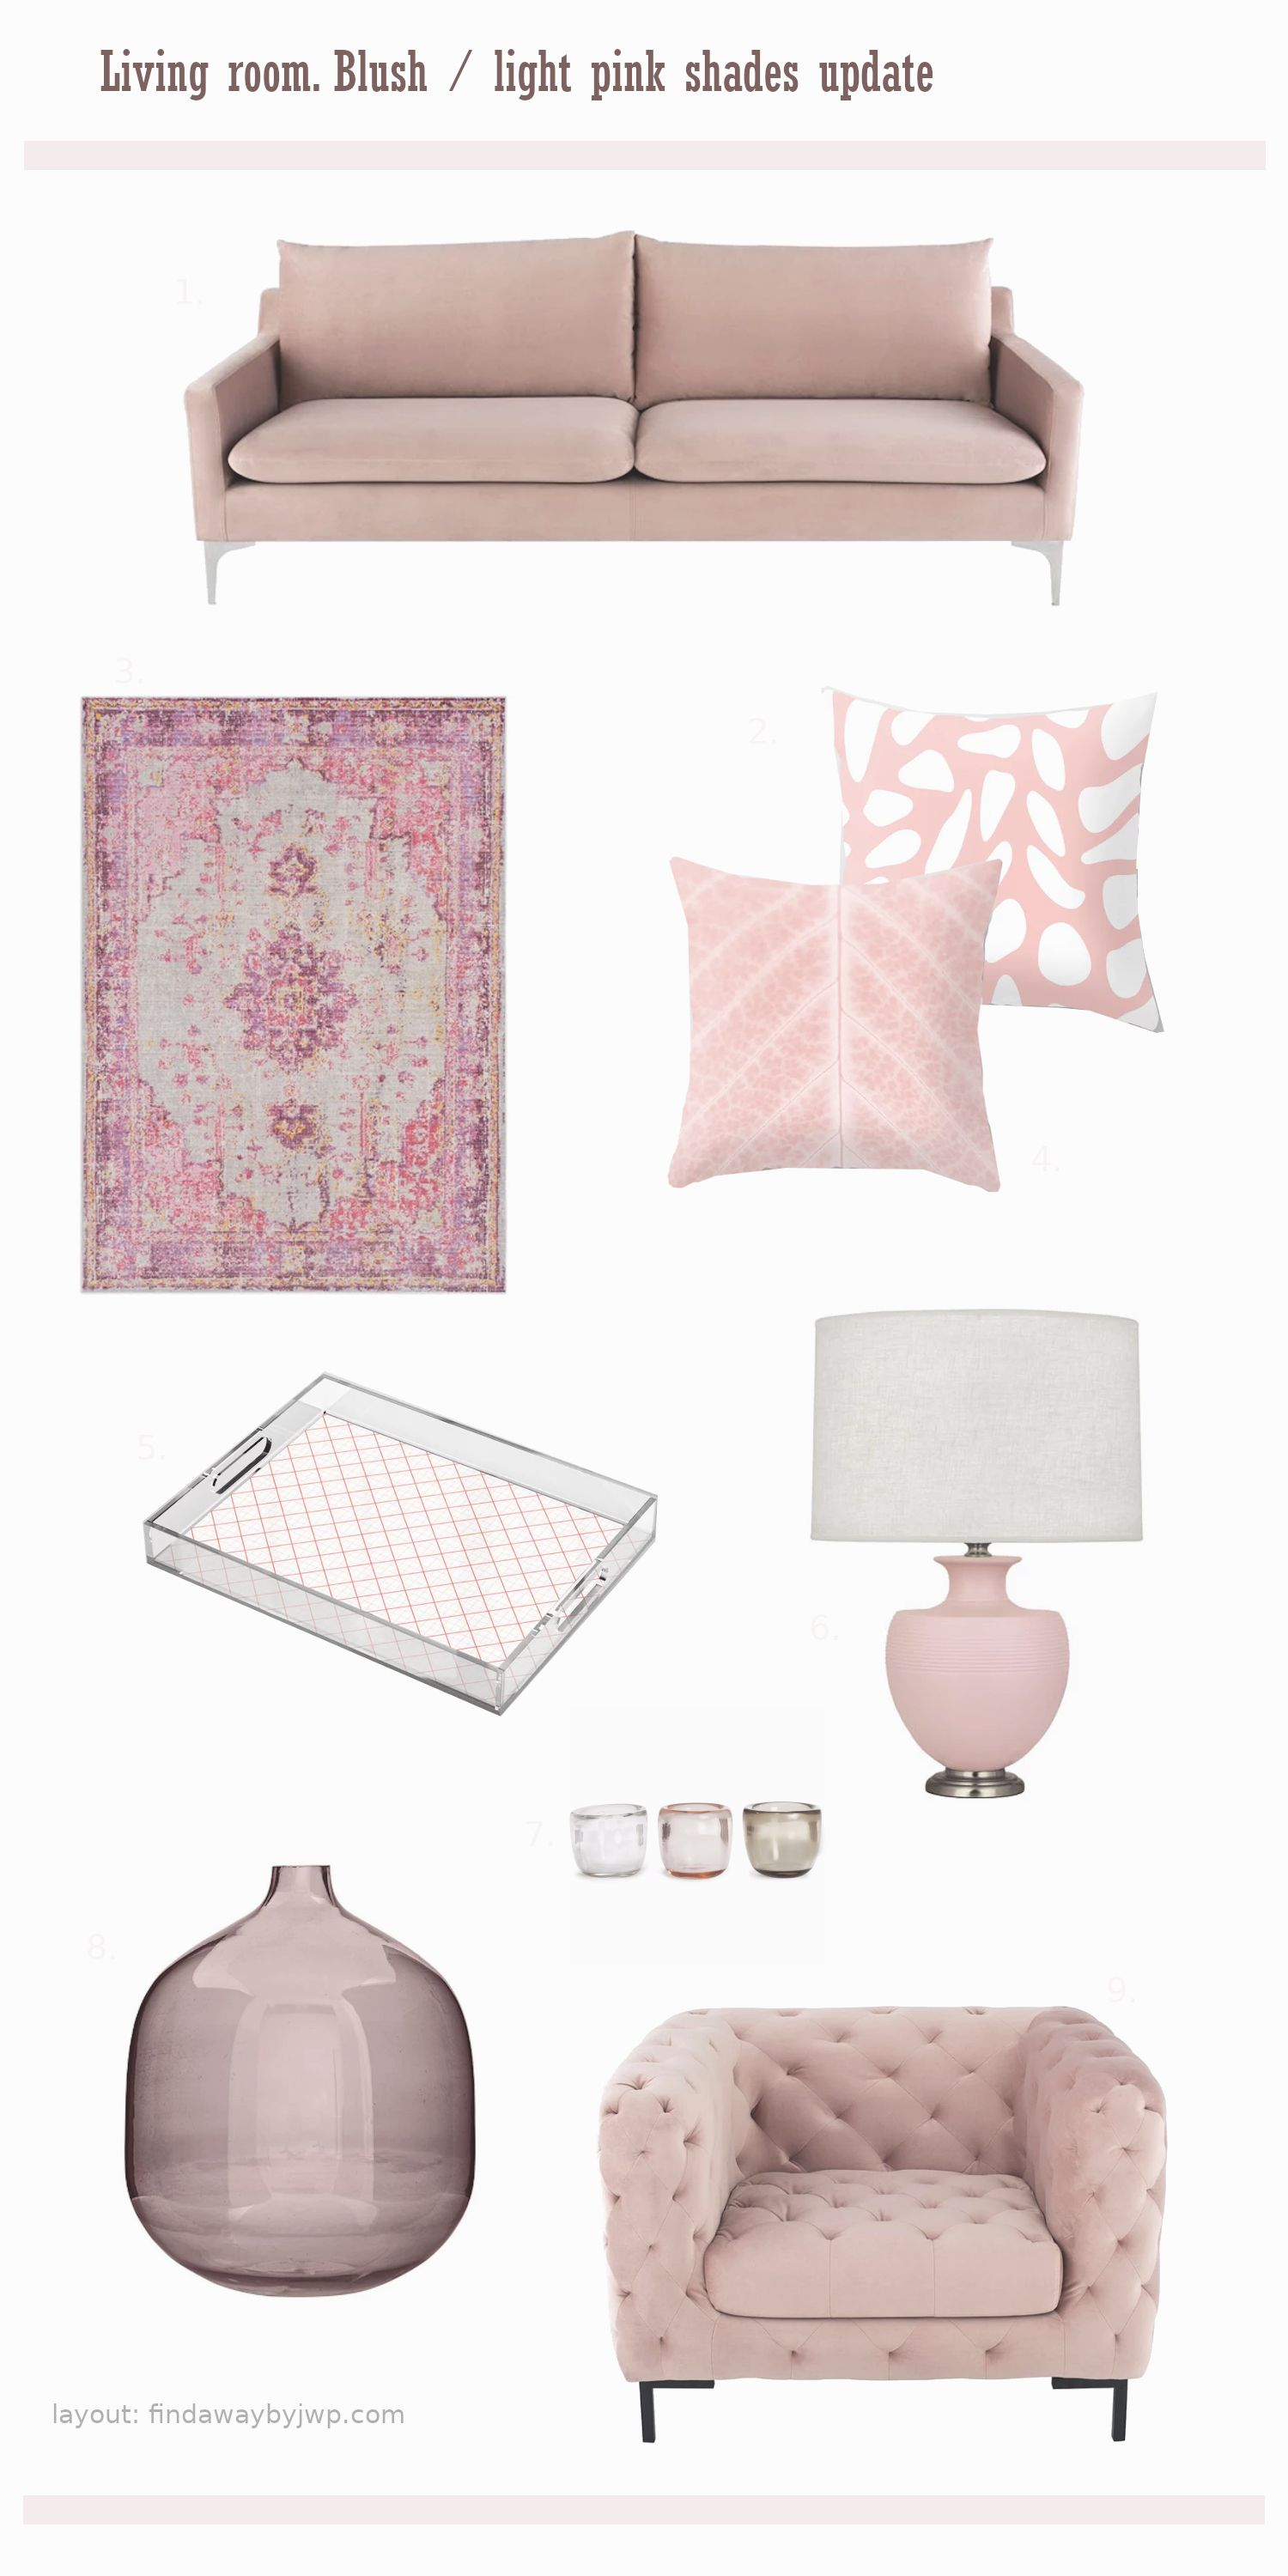 Pin On Blush Pink Red Purple Home Decorating Ideas